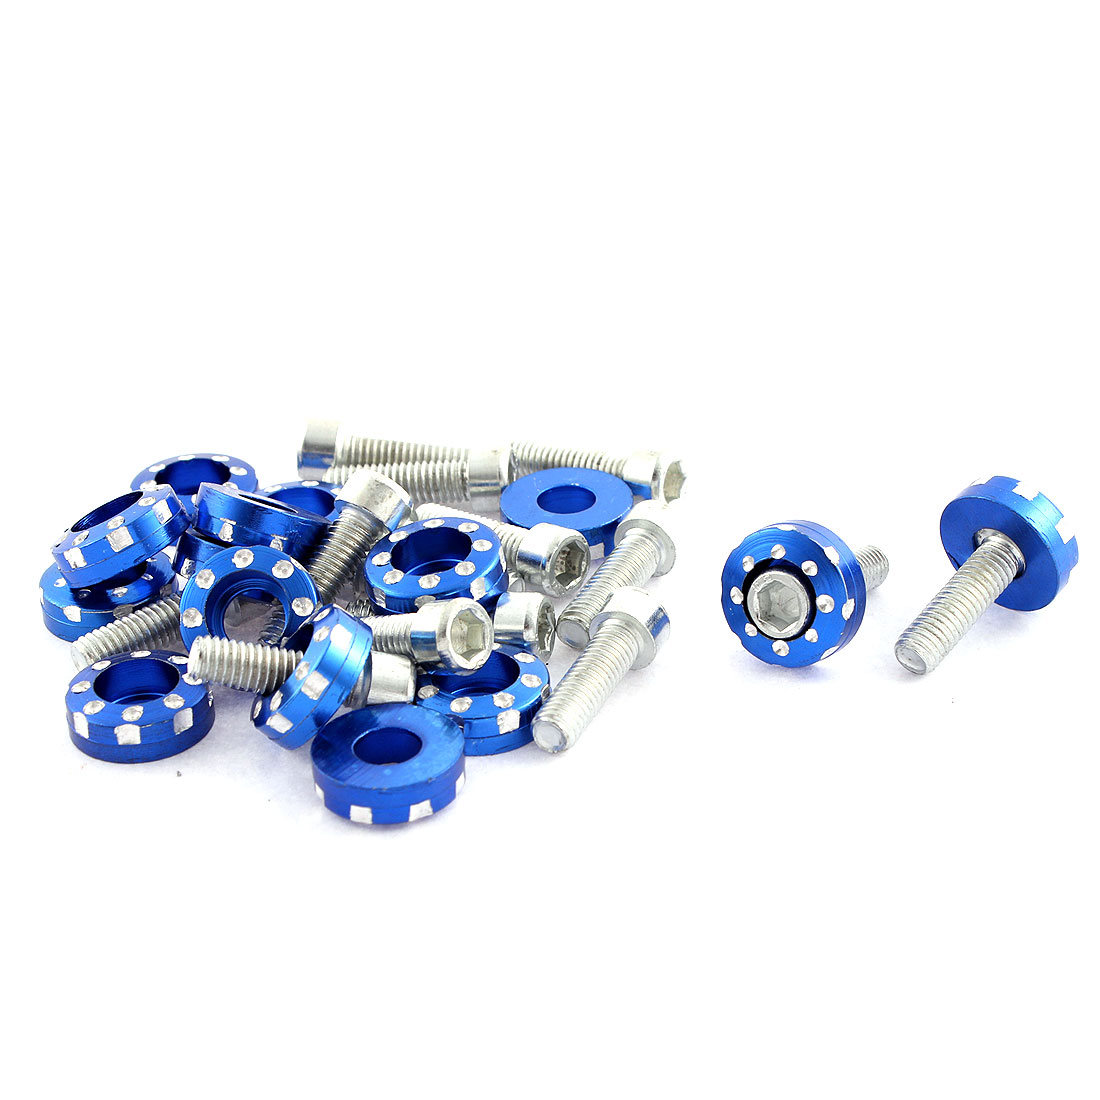 15 Pcs M6 Thread Dia Blue Metal Car Decorative License Plate Bolt Screw